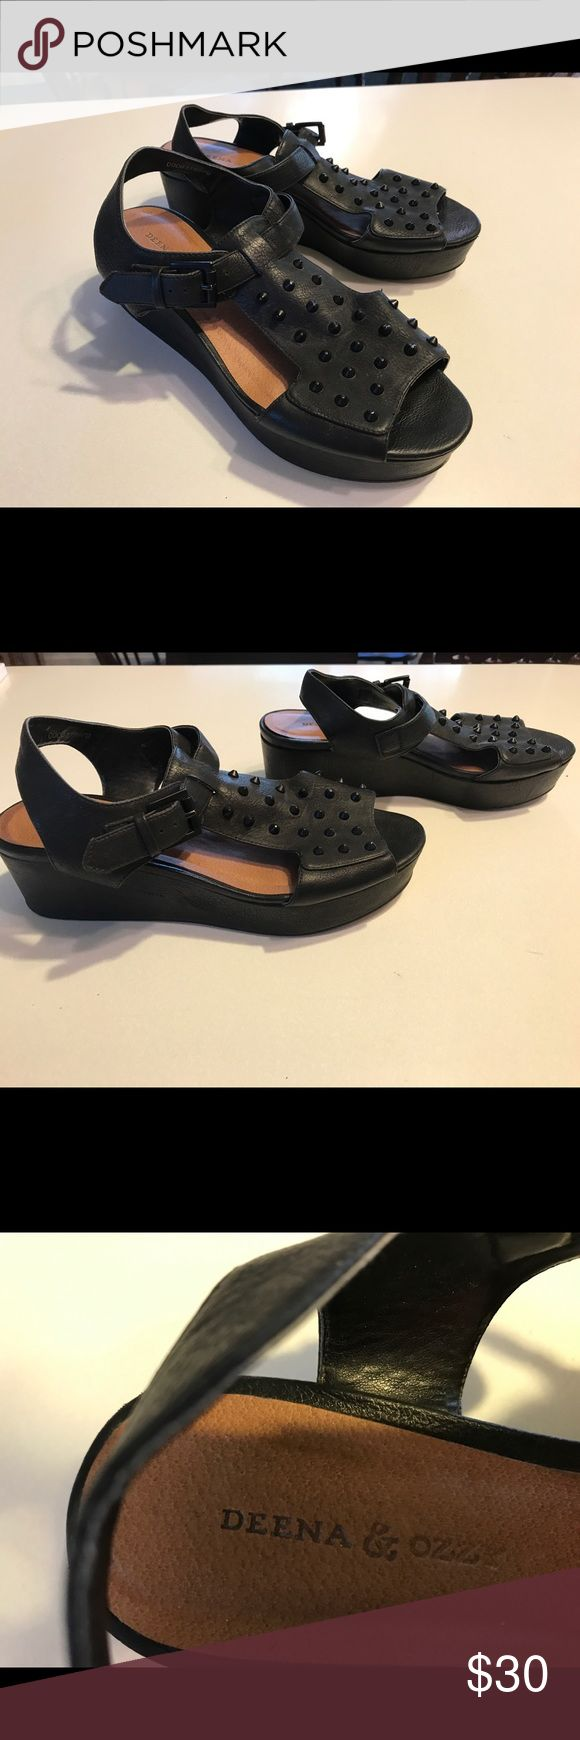 Deena & Ozzy platform sandal Deena & Ozzy black platform sandal with black spikes. Super comfy!! Deena & Oozzy Shoes Sandals